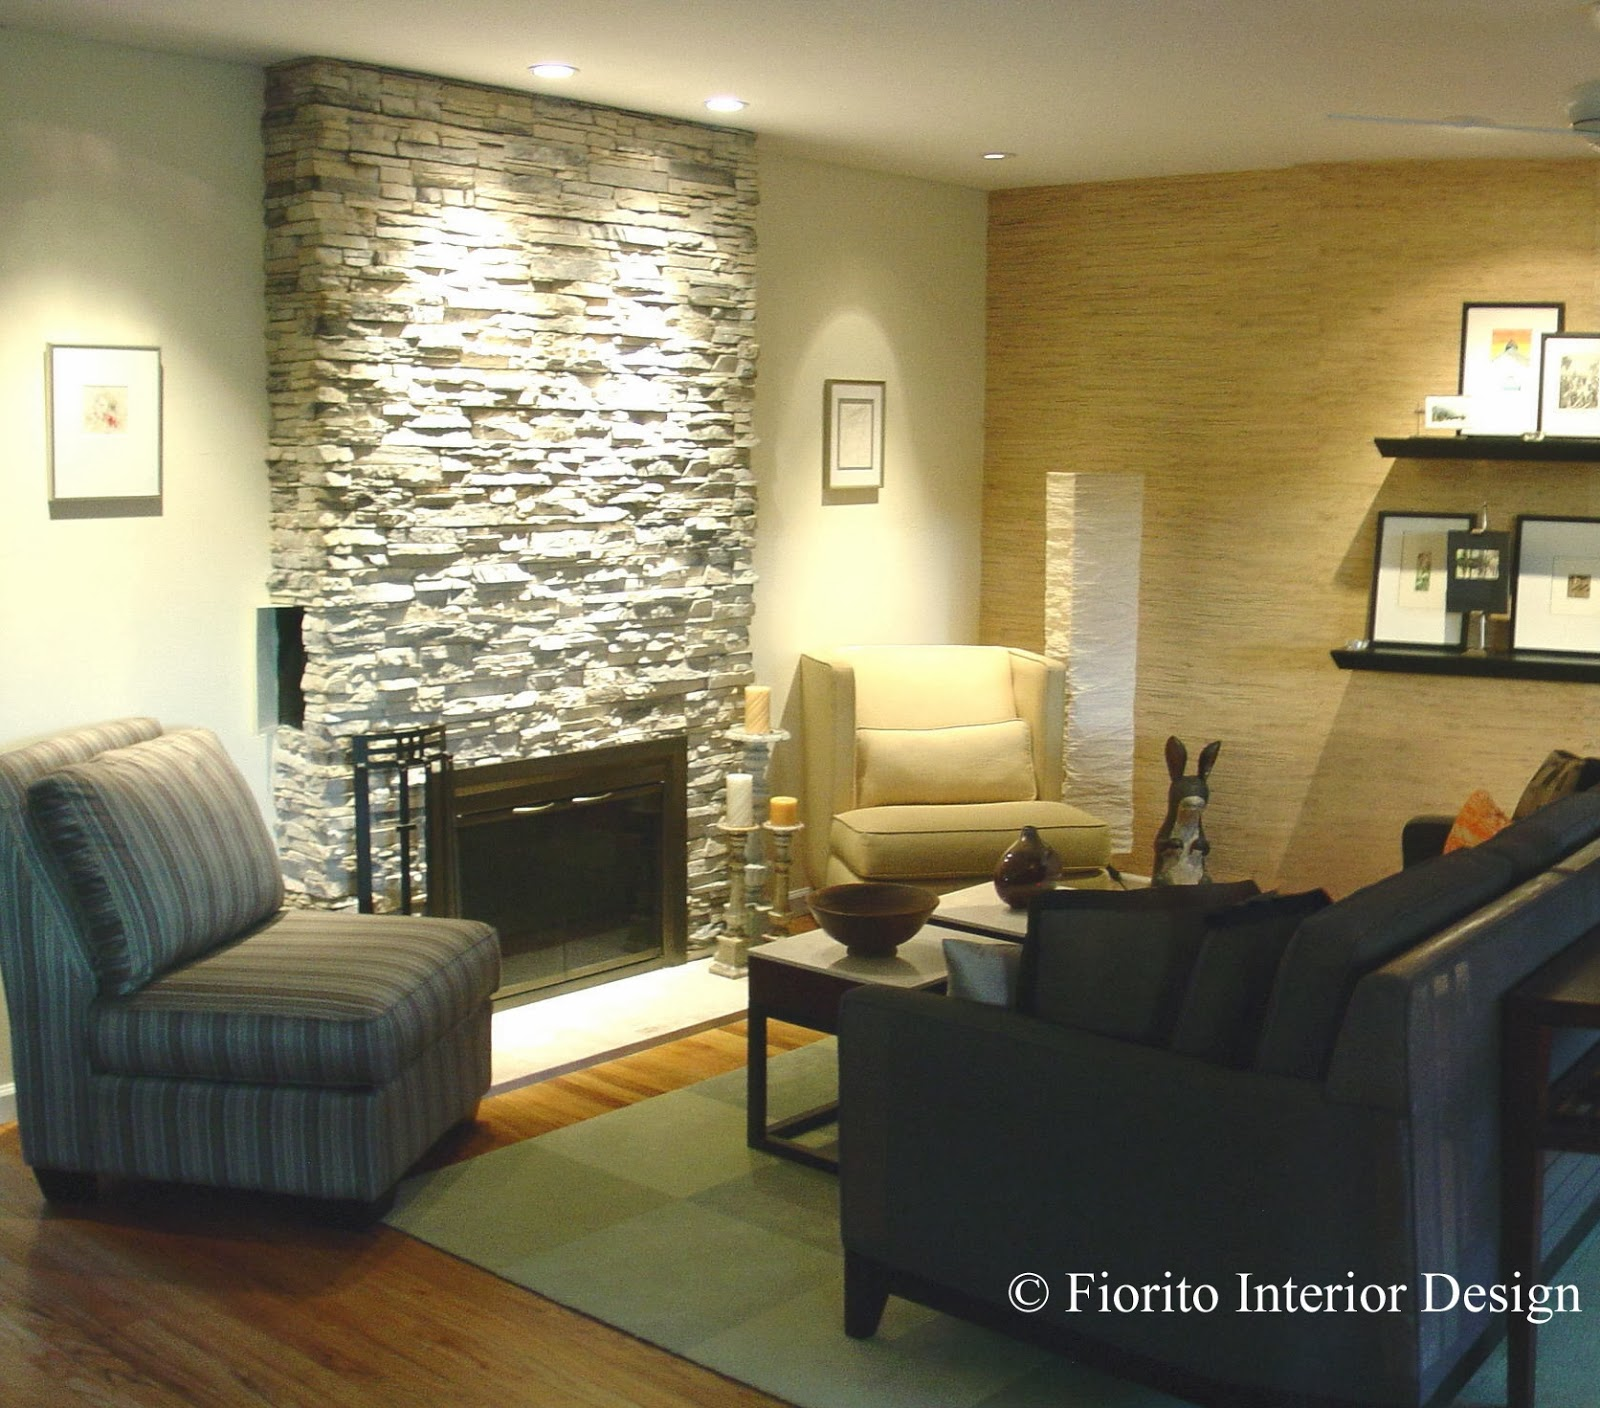 & Fiorito Interior Design: Lighting Basics: How To Illuminate A Space